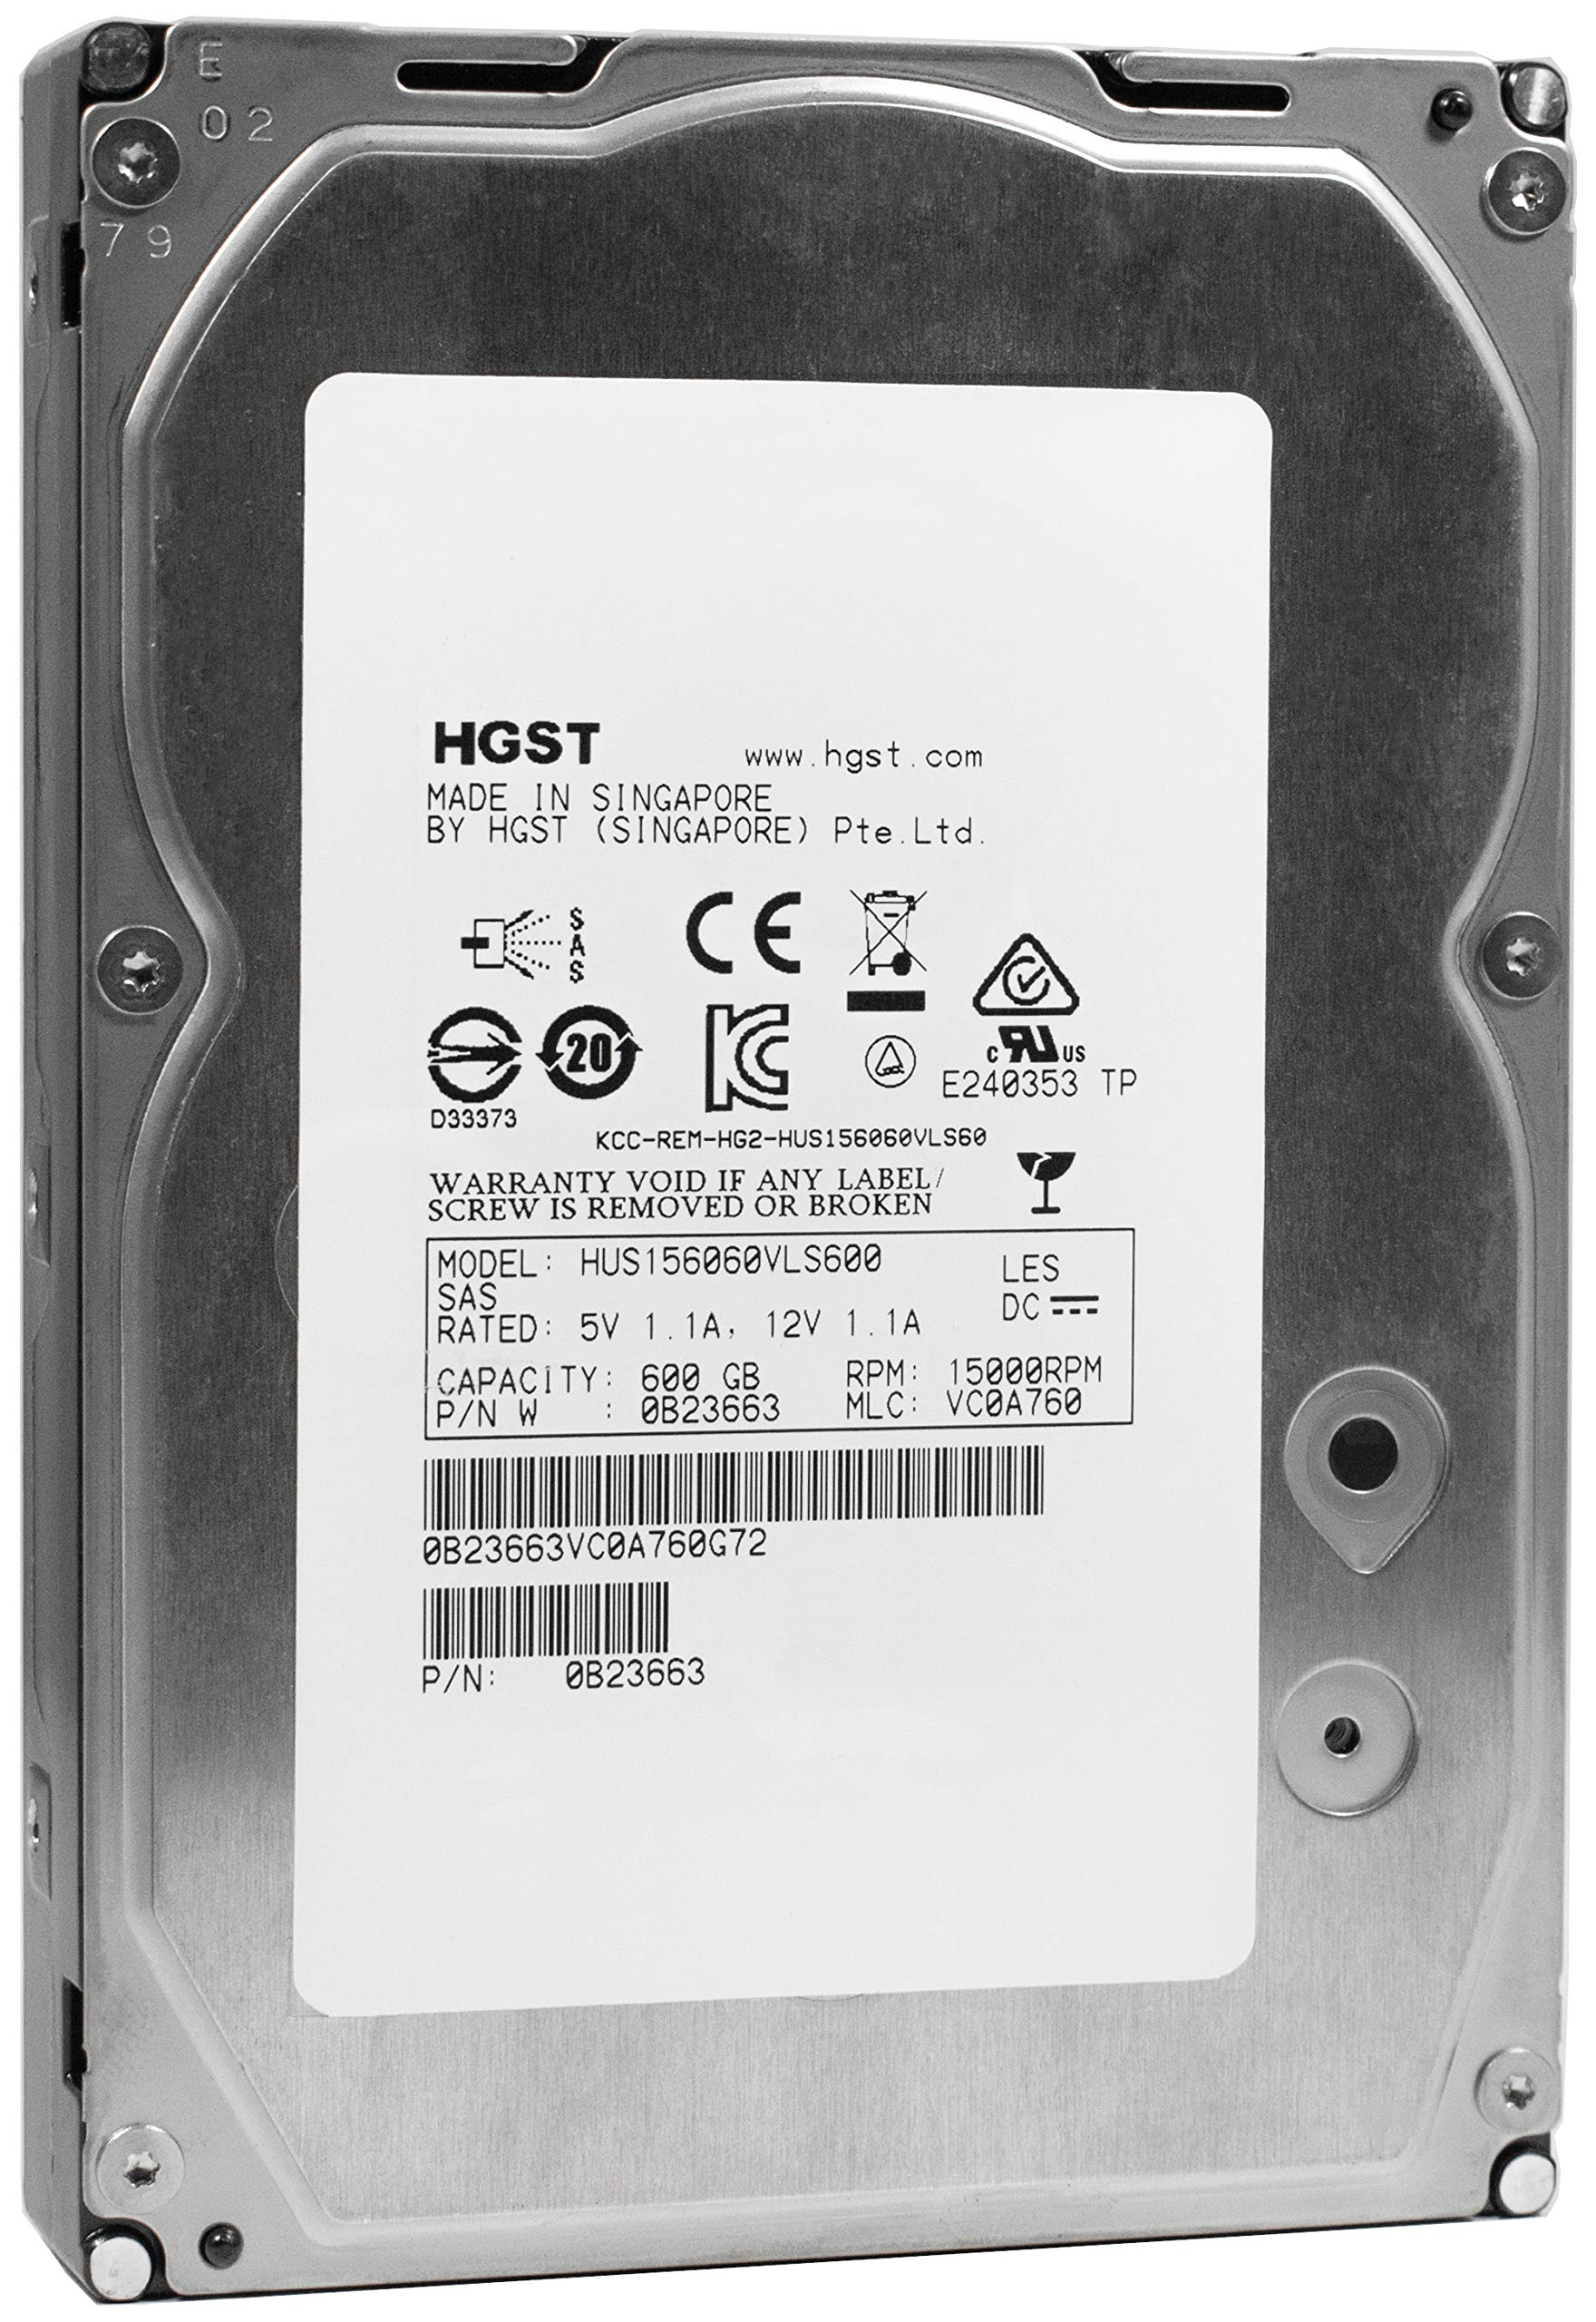 HGST Ultrastar 15K600 | 600GB 15K RPM SAS 6Gb/s 64MB Cache 3.5'' Inch | 1.6 Million MTBF | HUS156060VLS600 | Enterprise Hard Disk Drive With Mission Critical Performance (HDD) by HGST (Image #2)